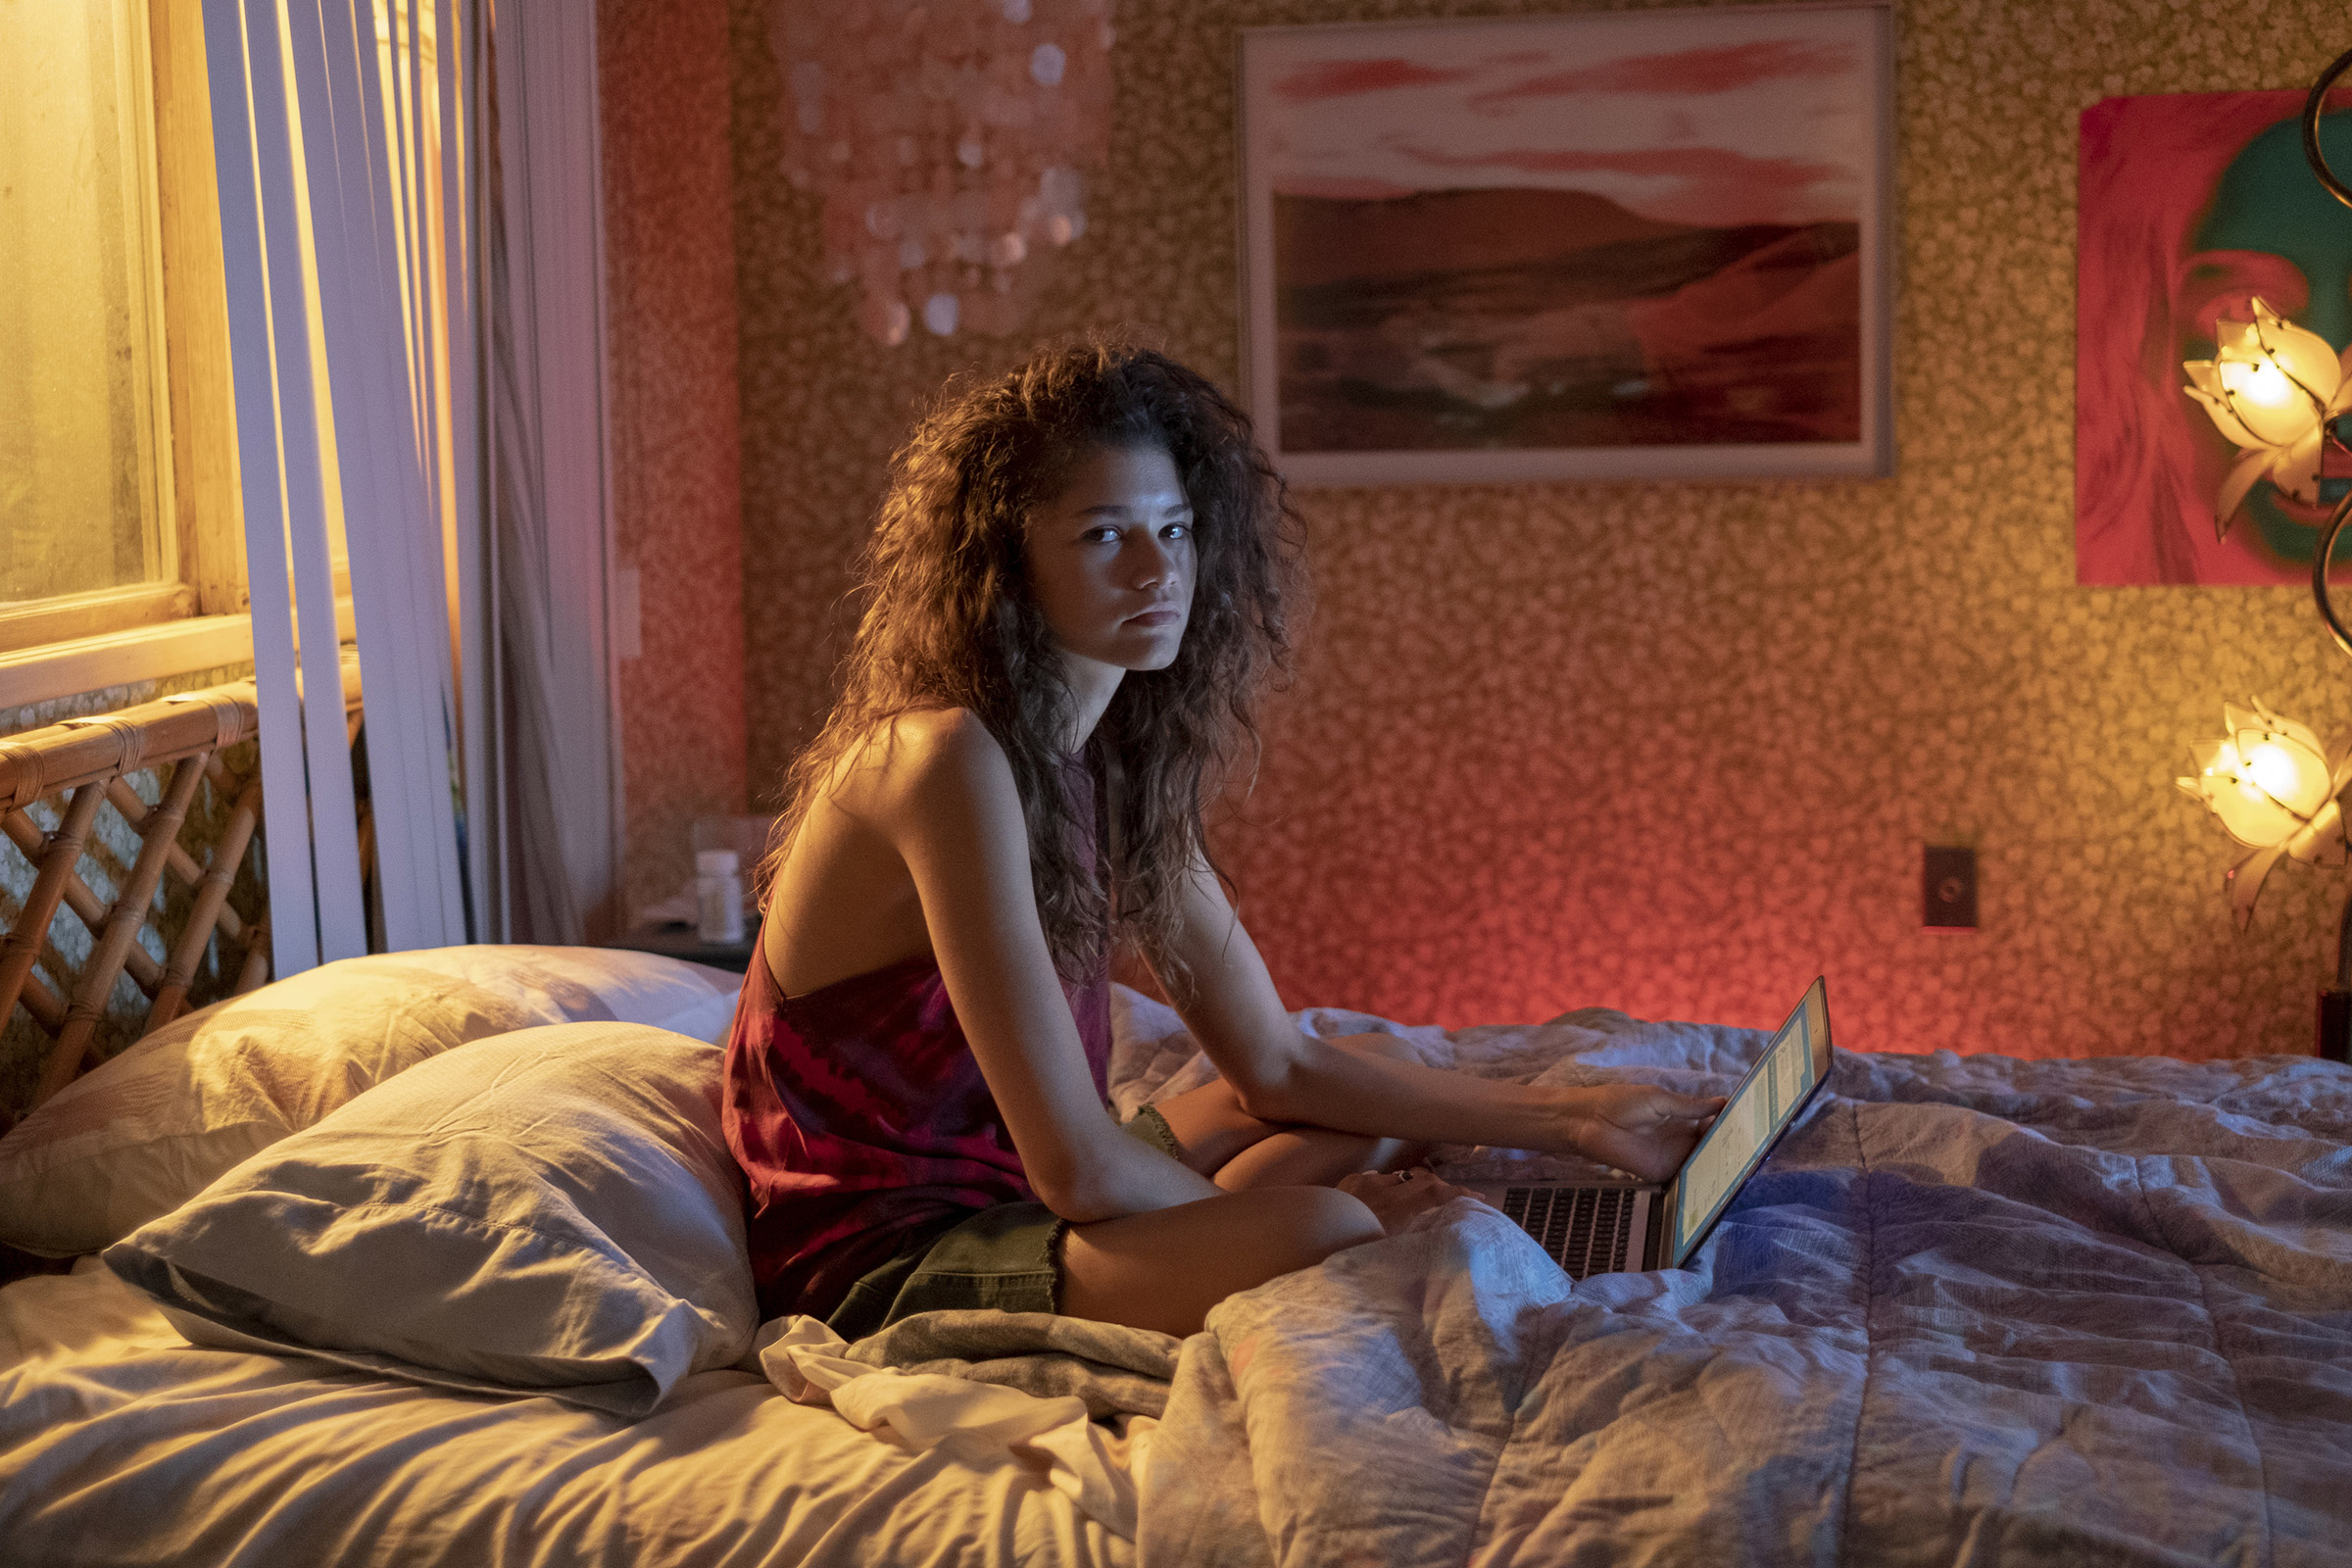 Zendaya in a scene from the HBO show Euphoria.